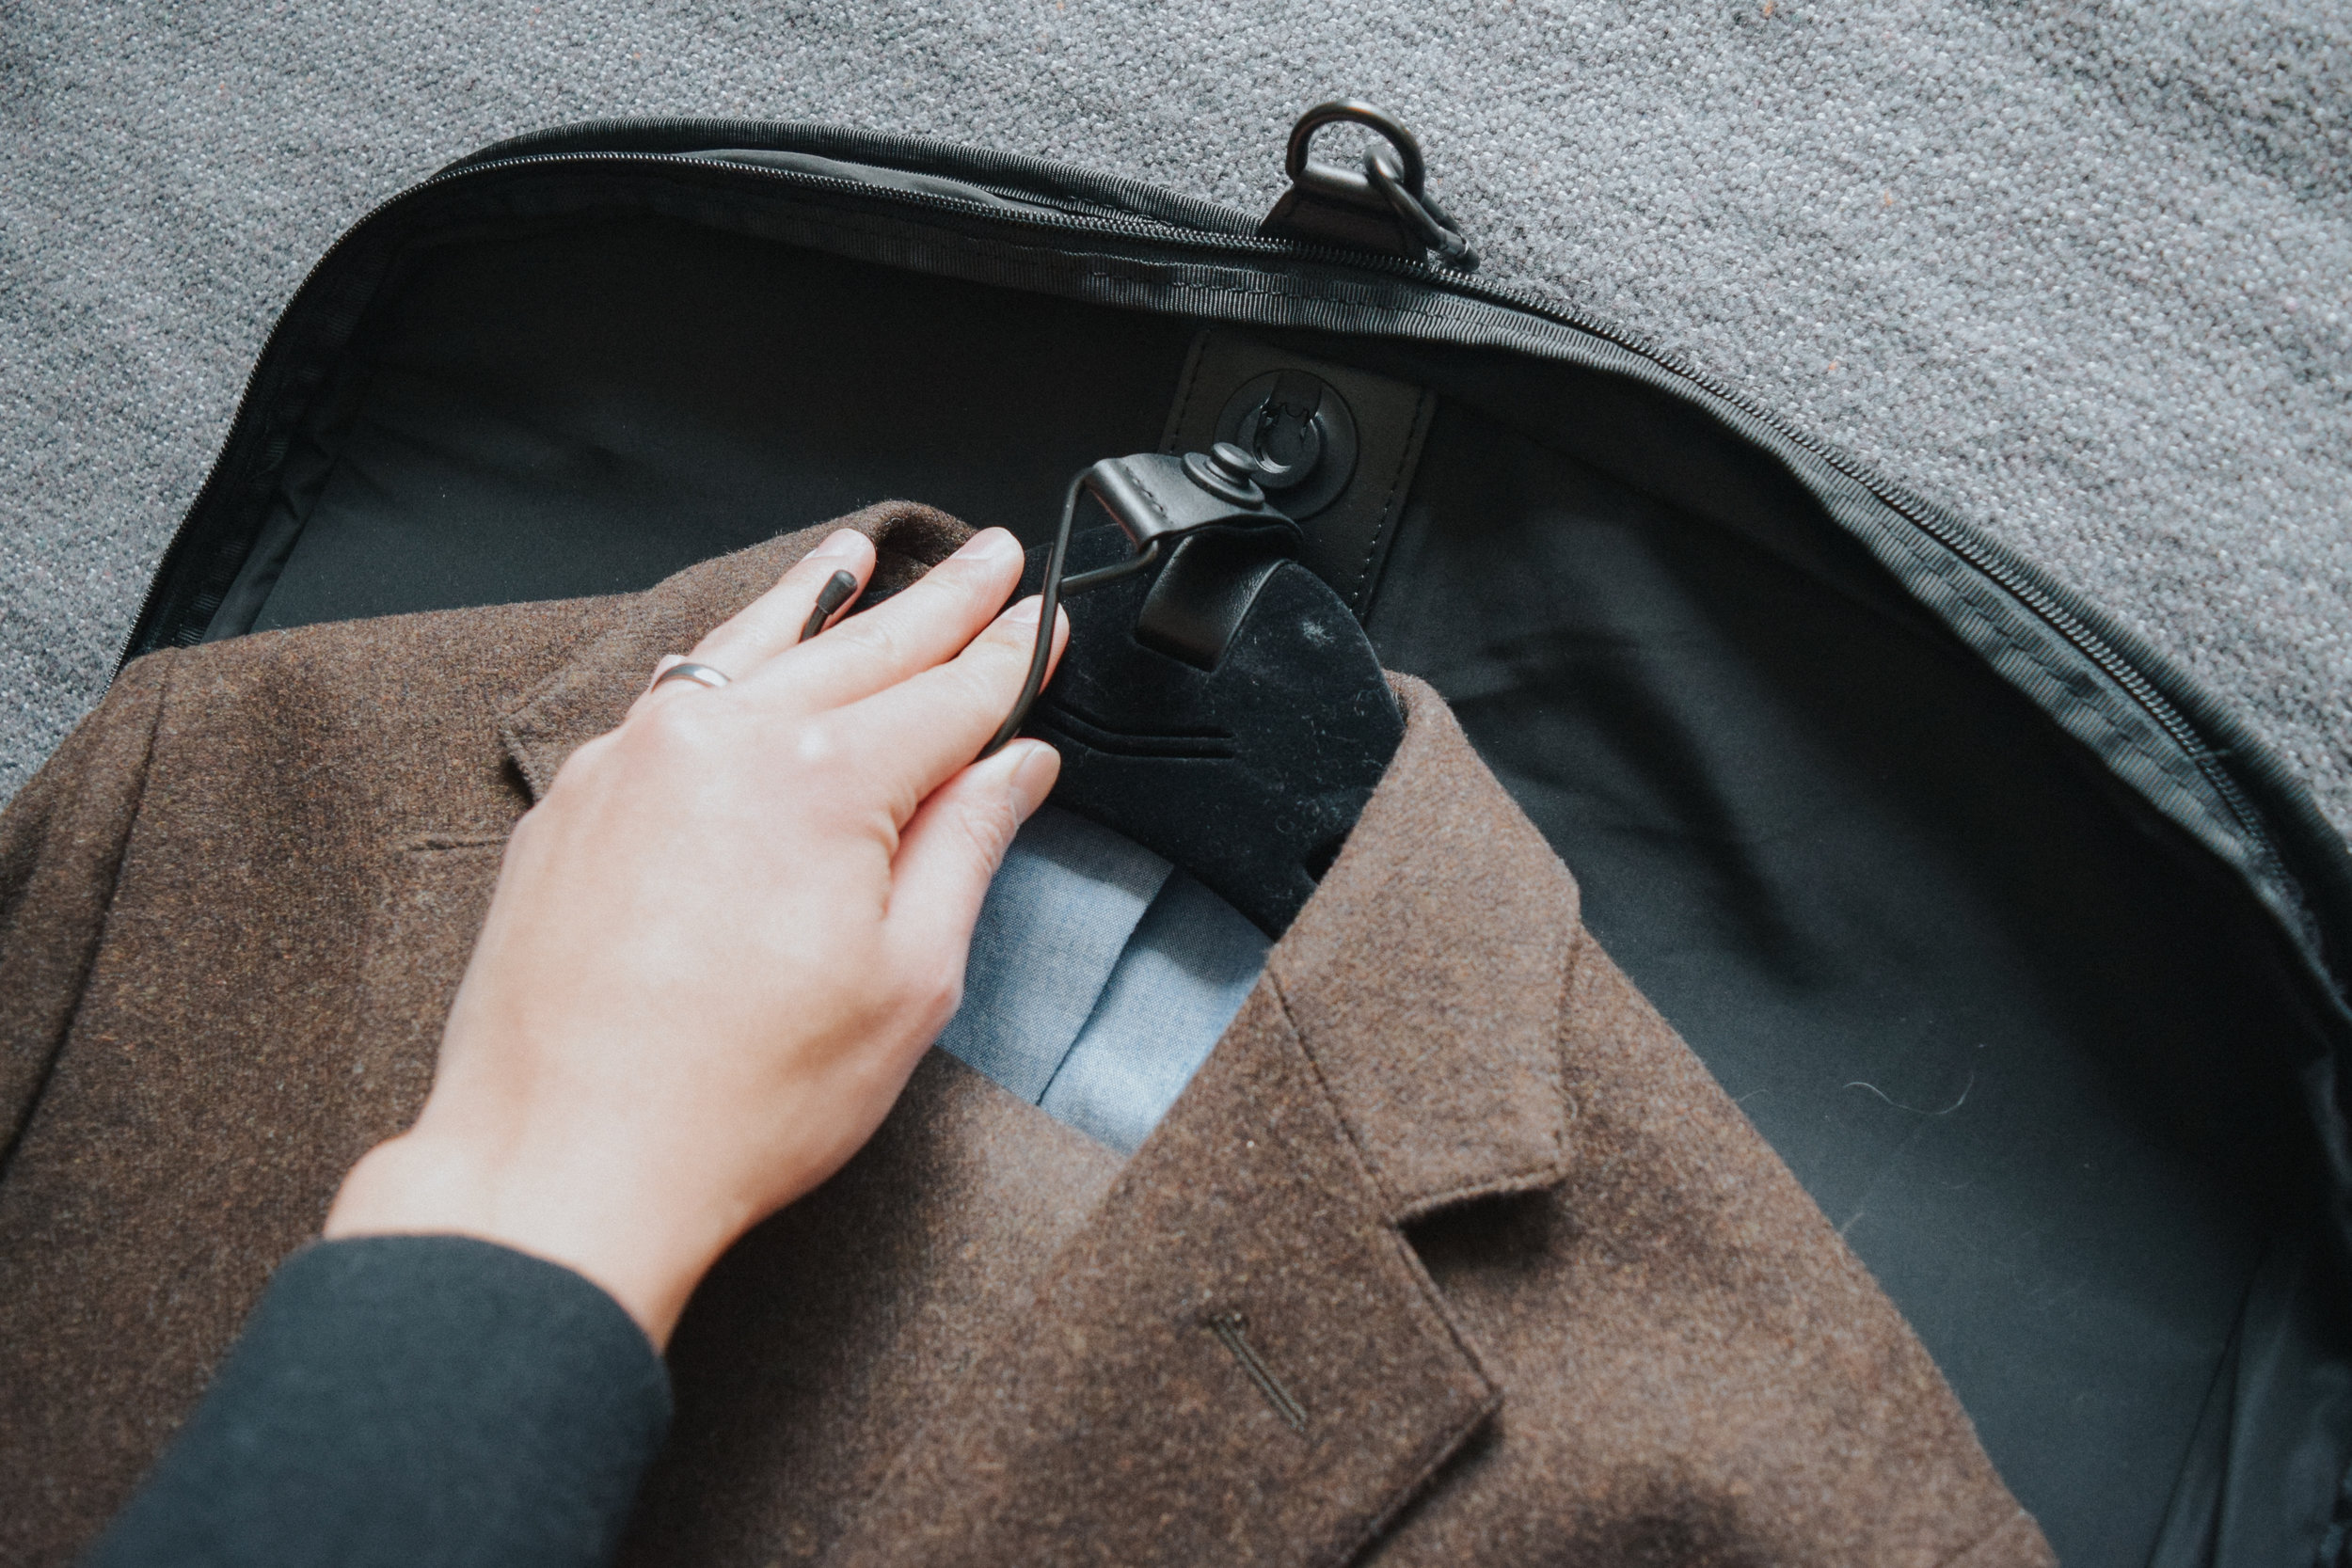 Built-in magnetic hanger system to keep your suit in place and detachable for use outside of the bag